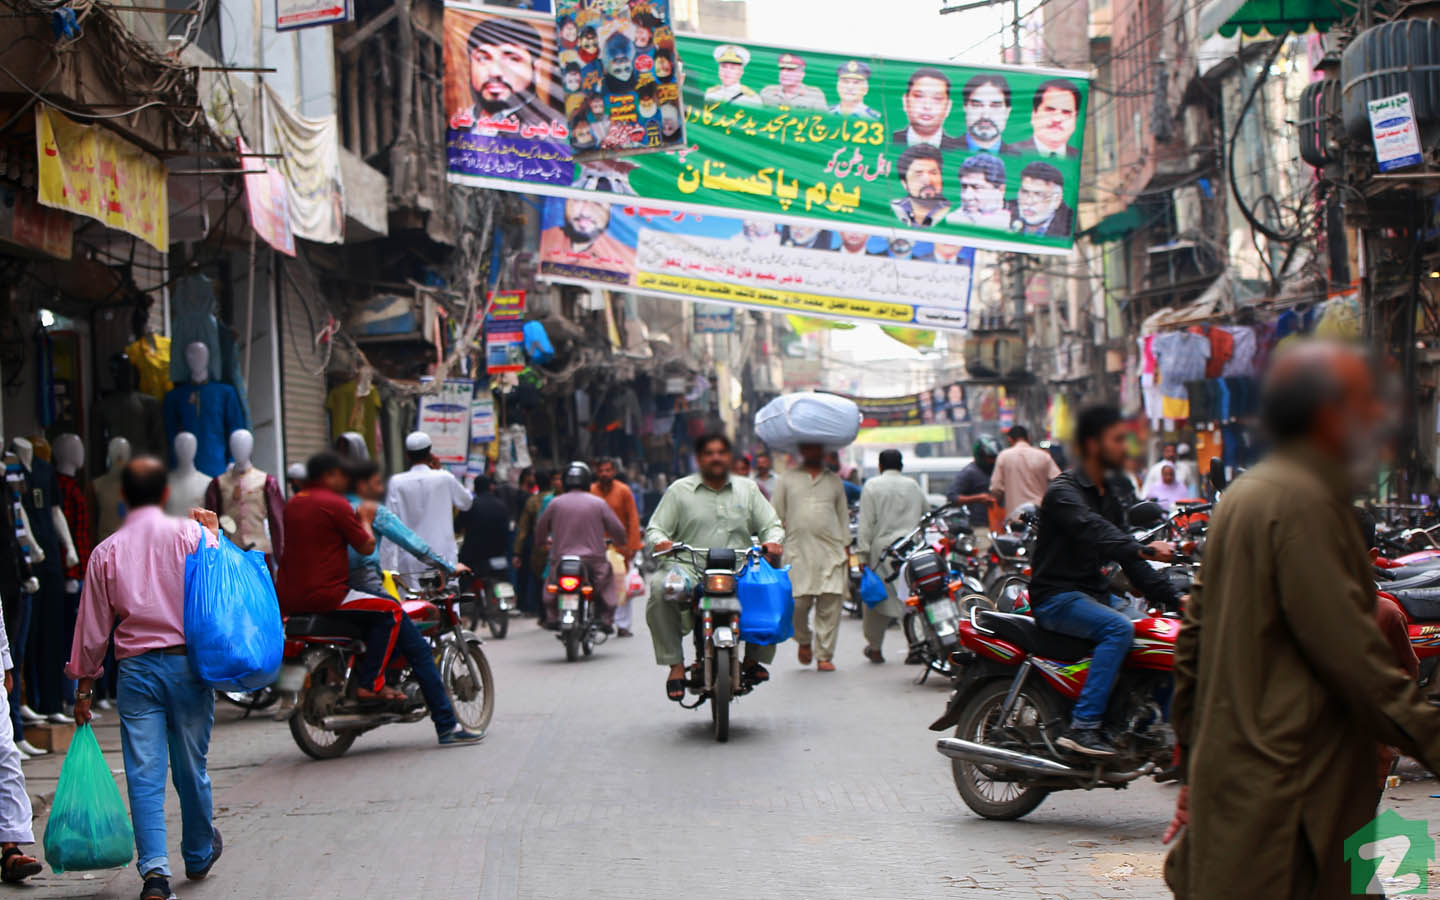 Anarkali Bazaar was named after an iconic Mughal era personality.